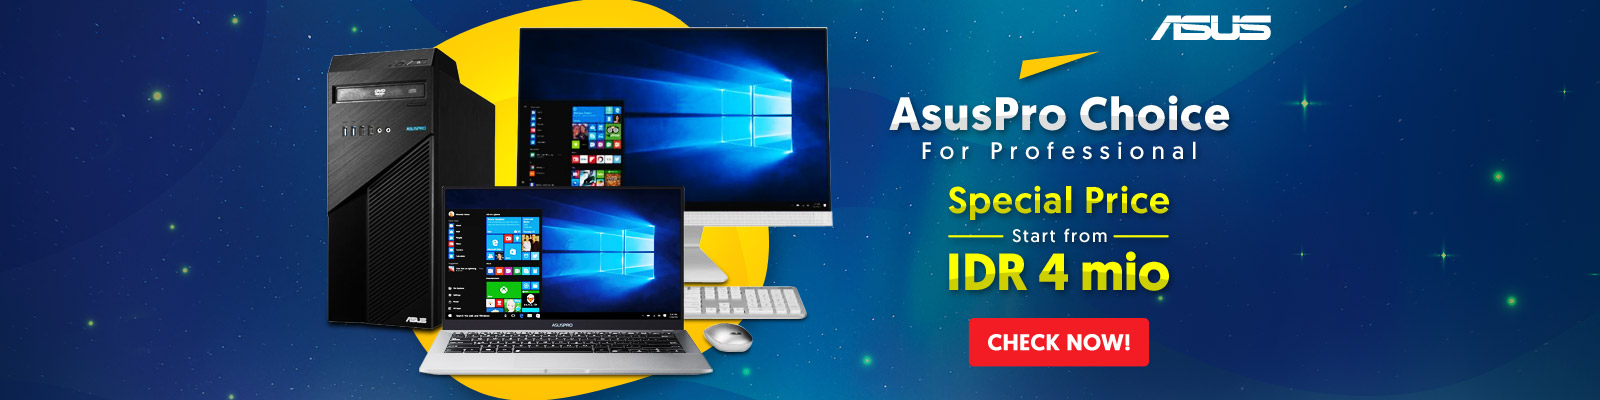 AsusPro Special Price